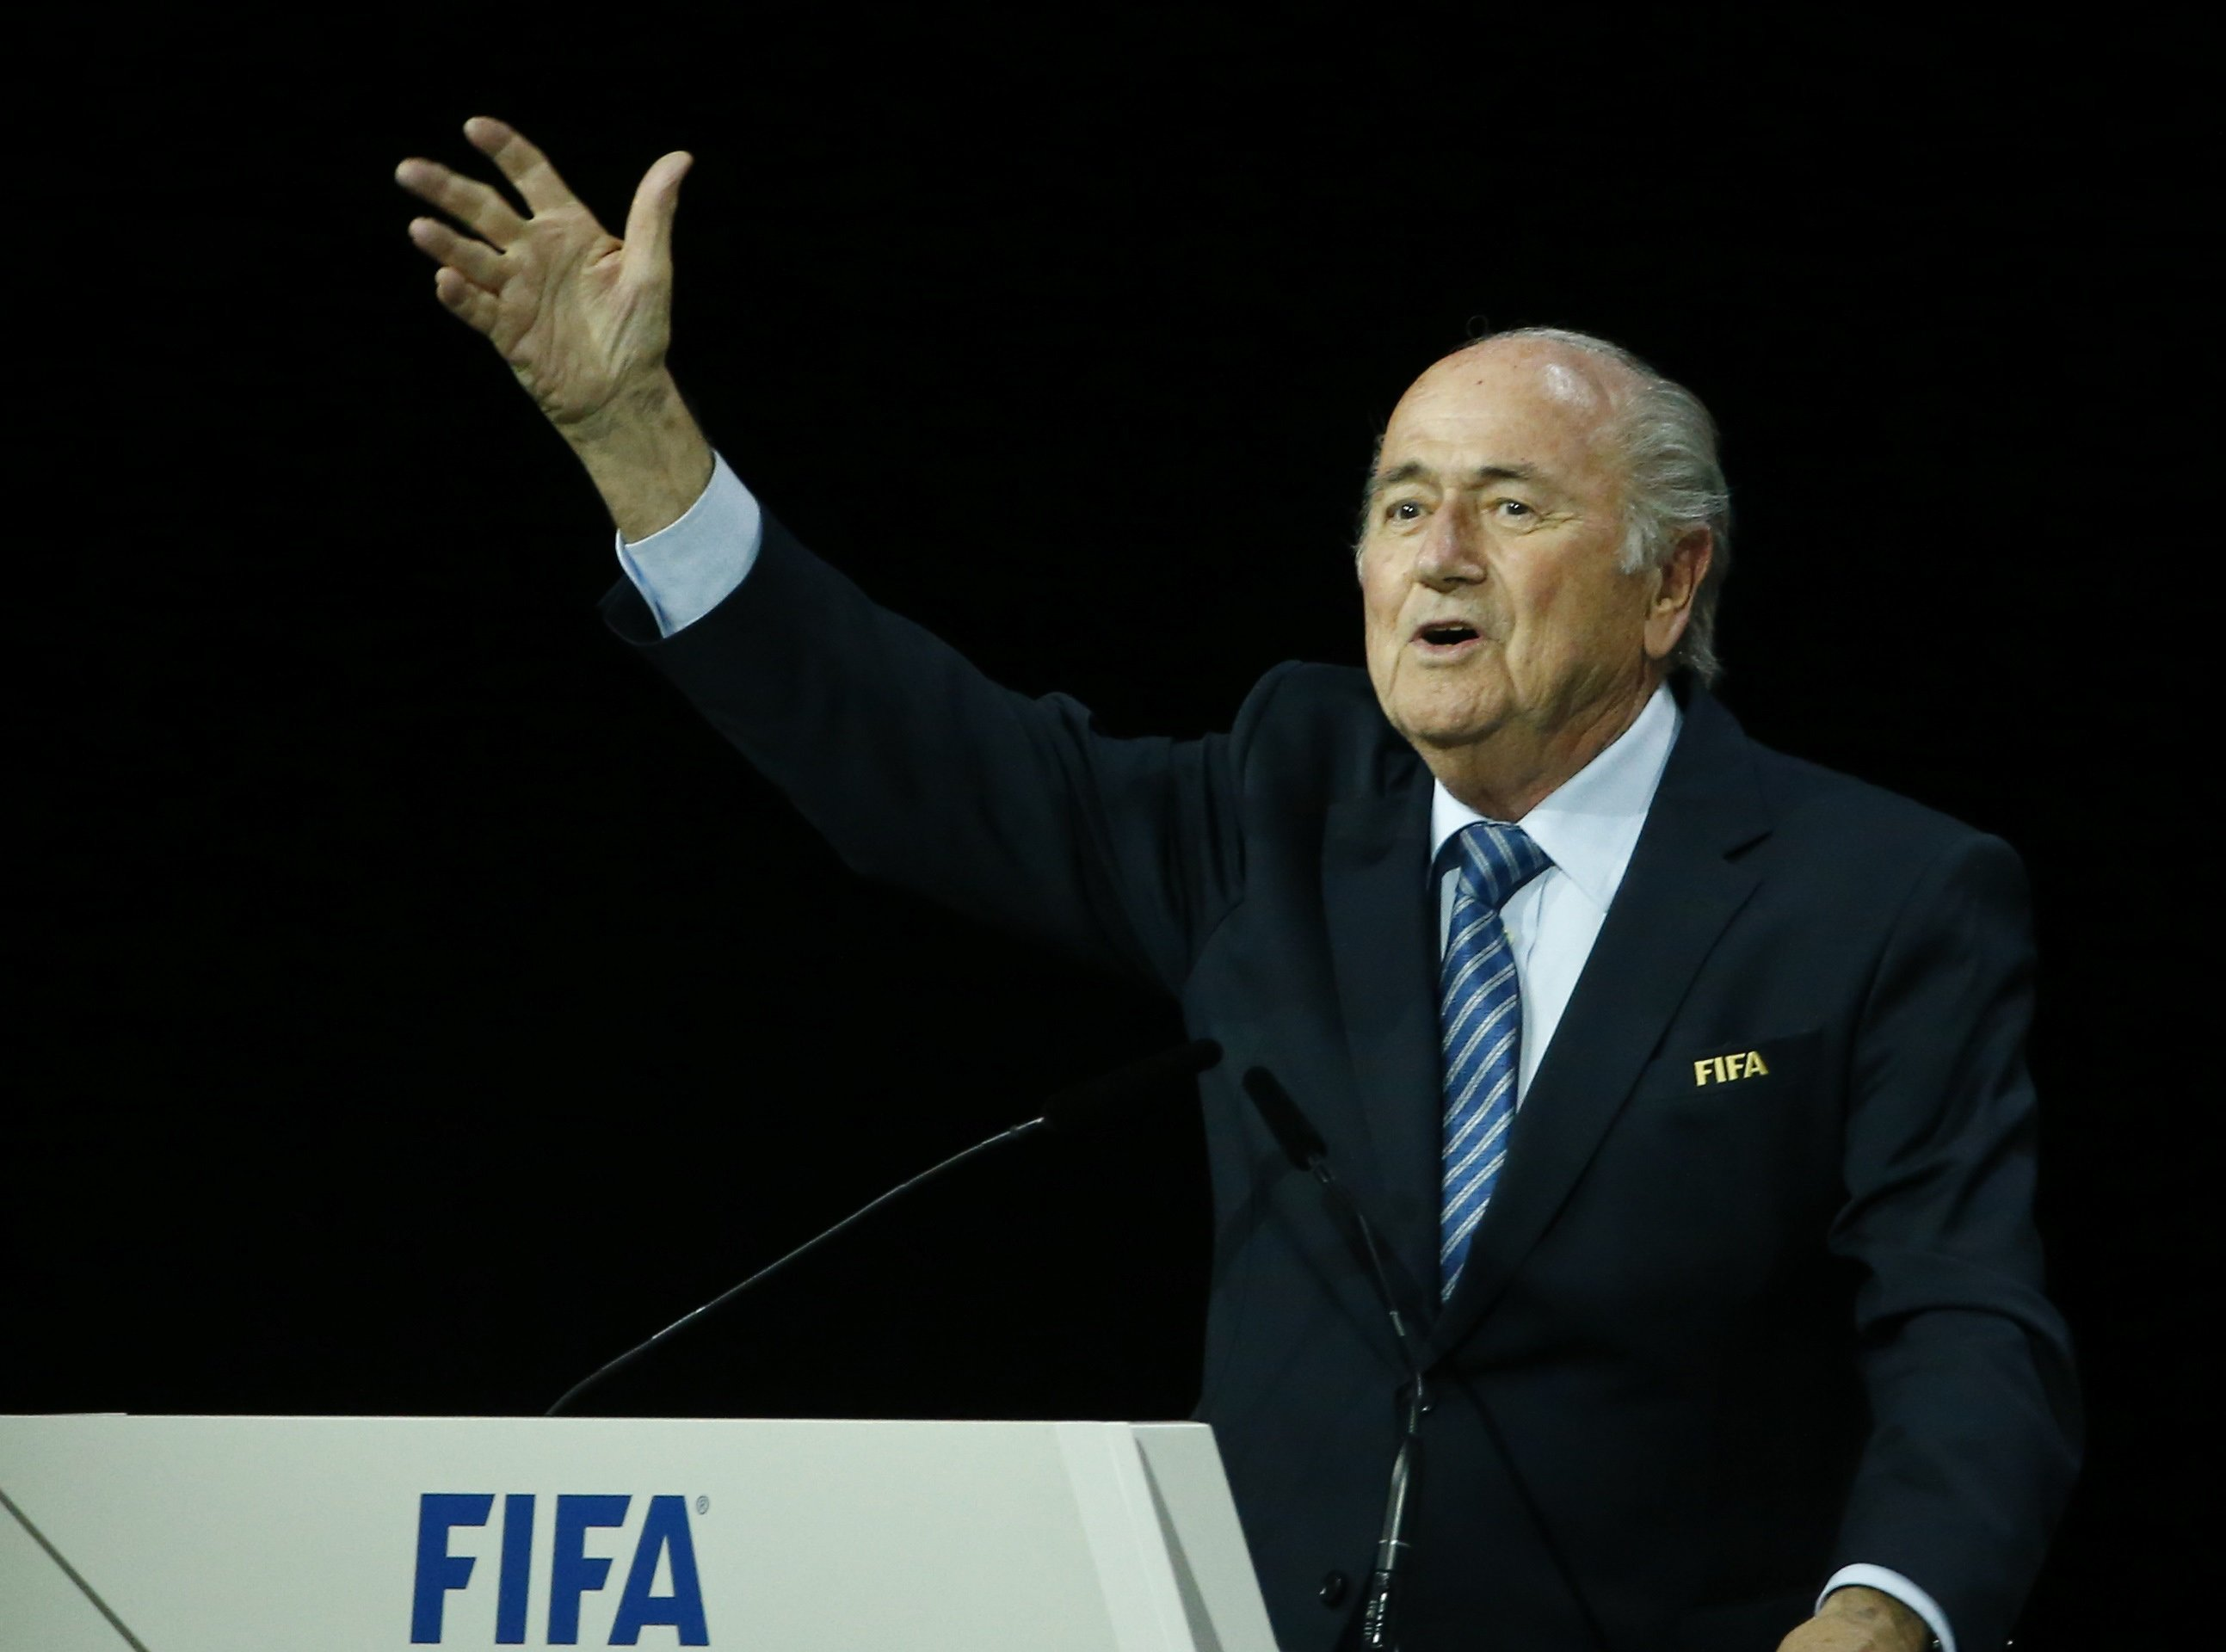 FIFA President Sepp Blatter speaks after he was re-elected at the 65th FIFA Congress in Zurich on May 29, 2015.